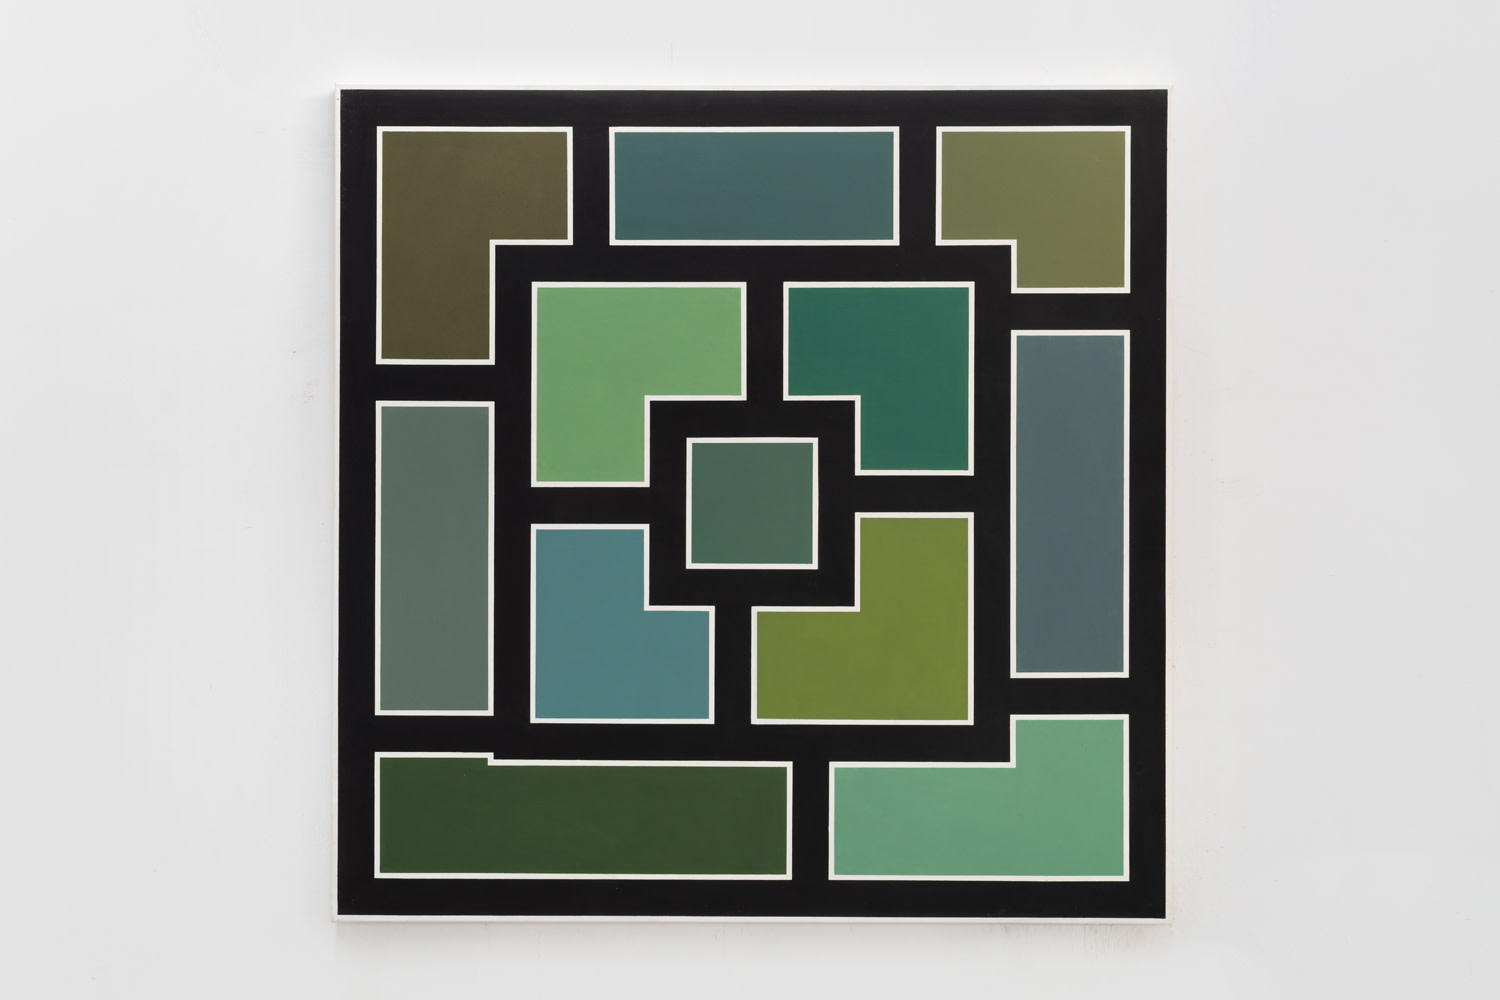 Greens, black and white, 1974